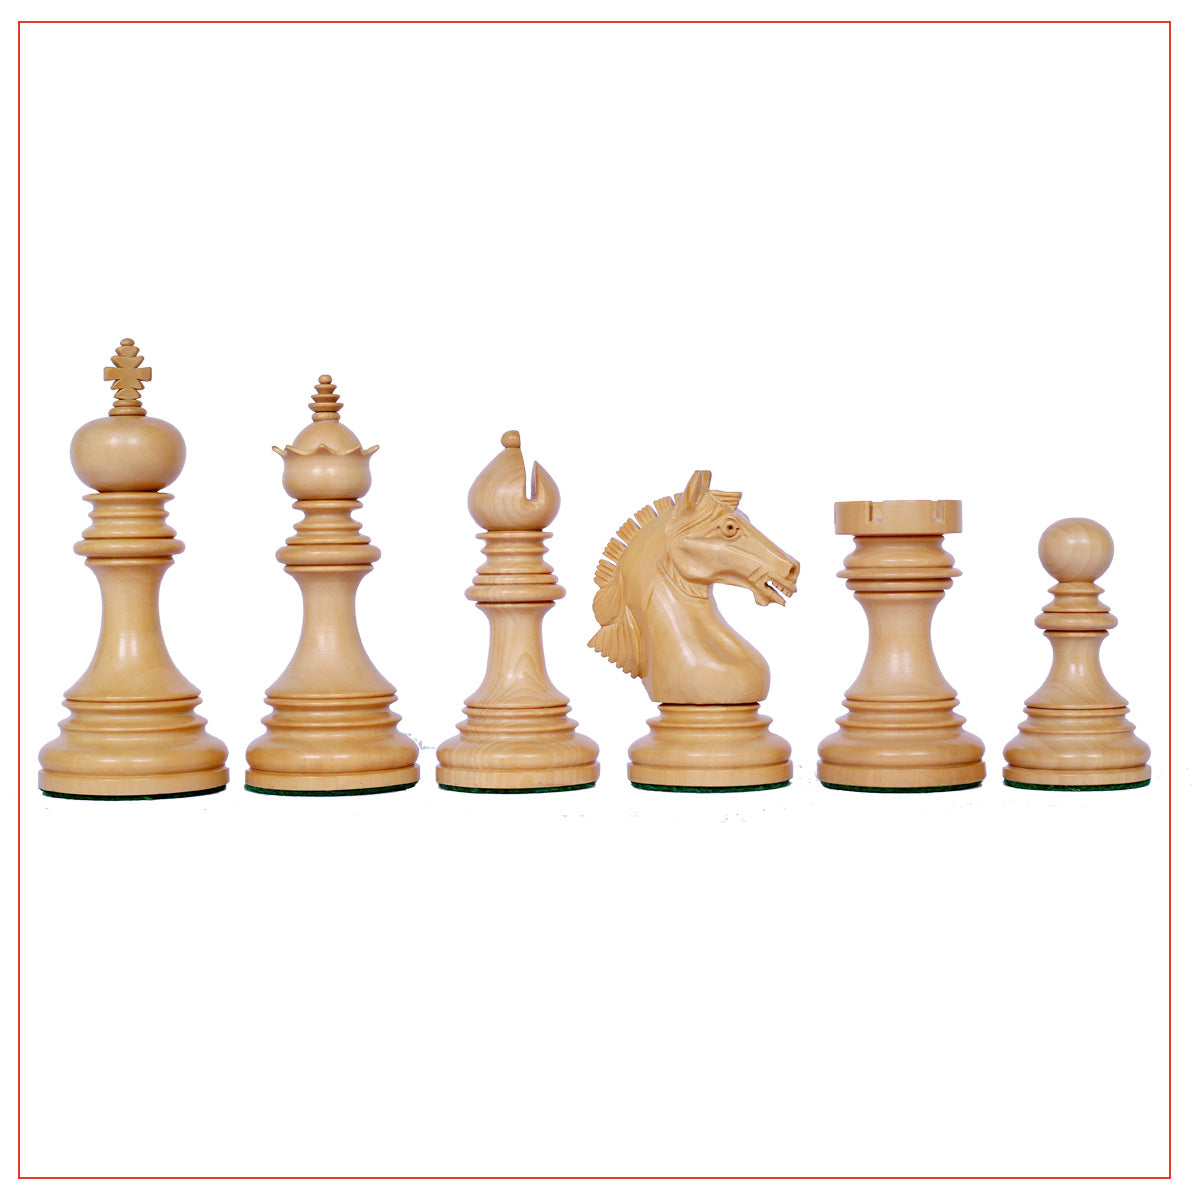 "Patras Series 4"" Ebony Wood Staunton Chess Set"